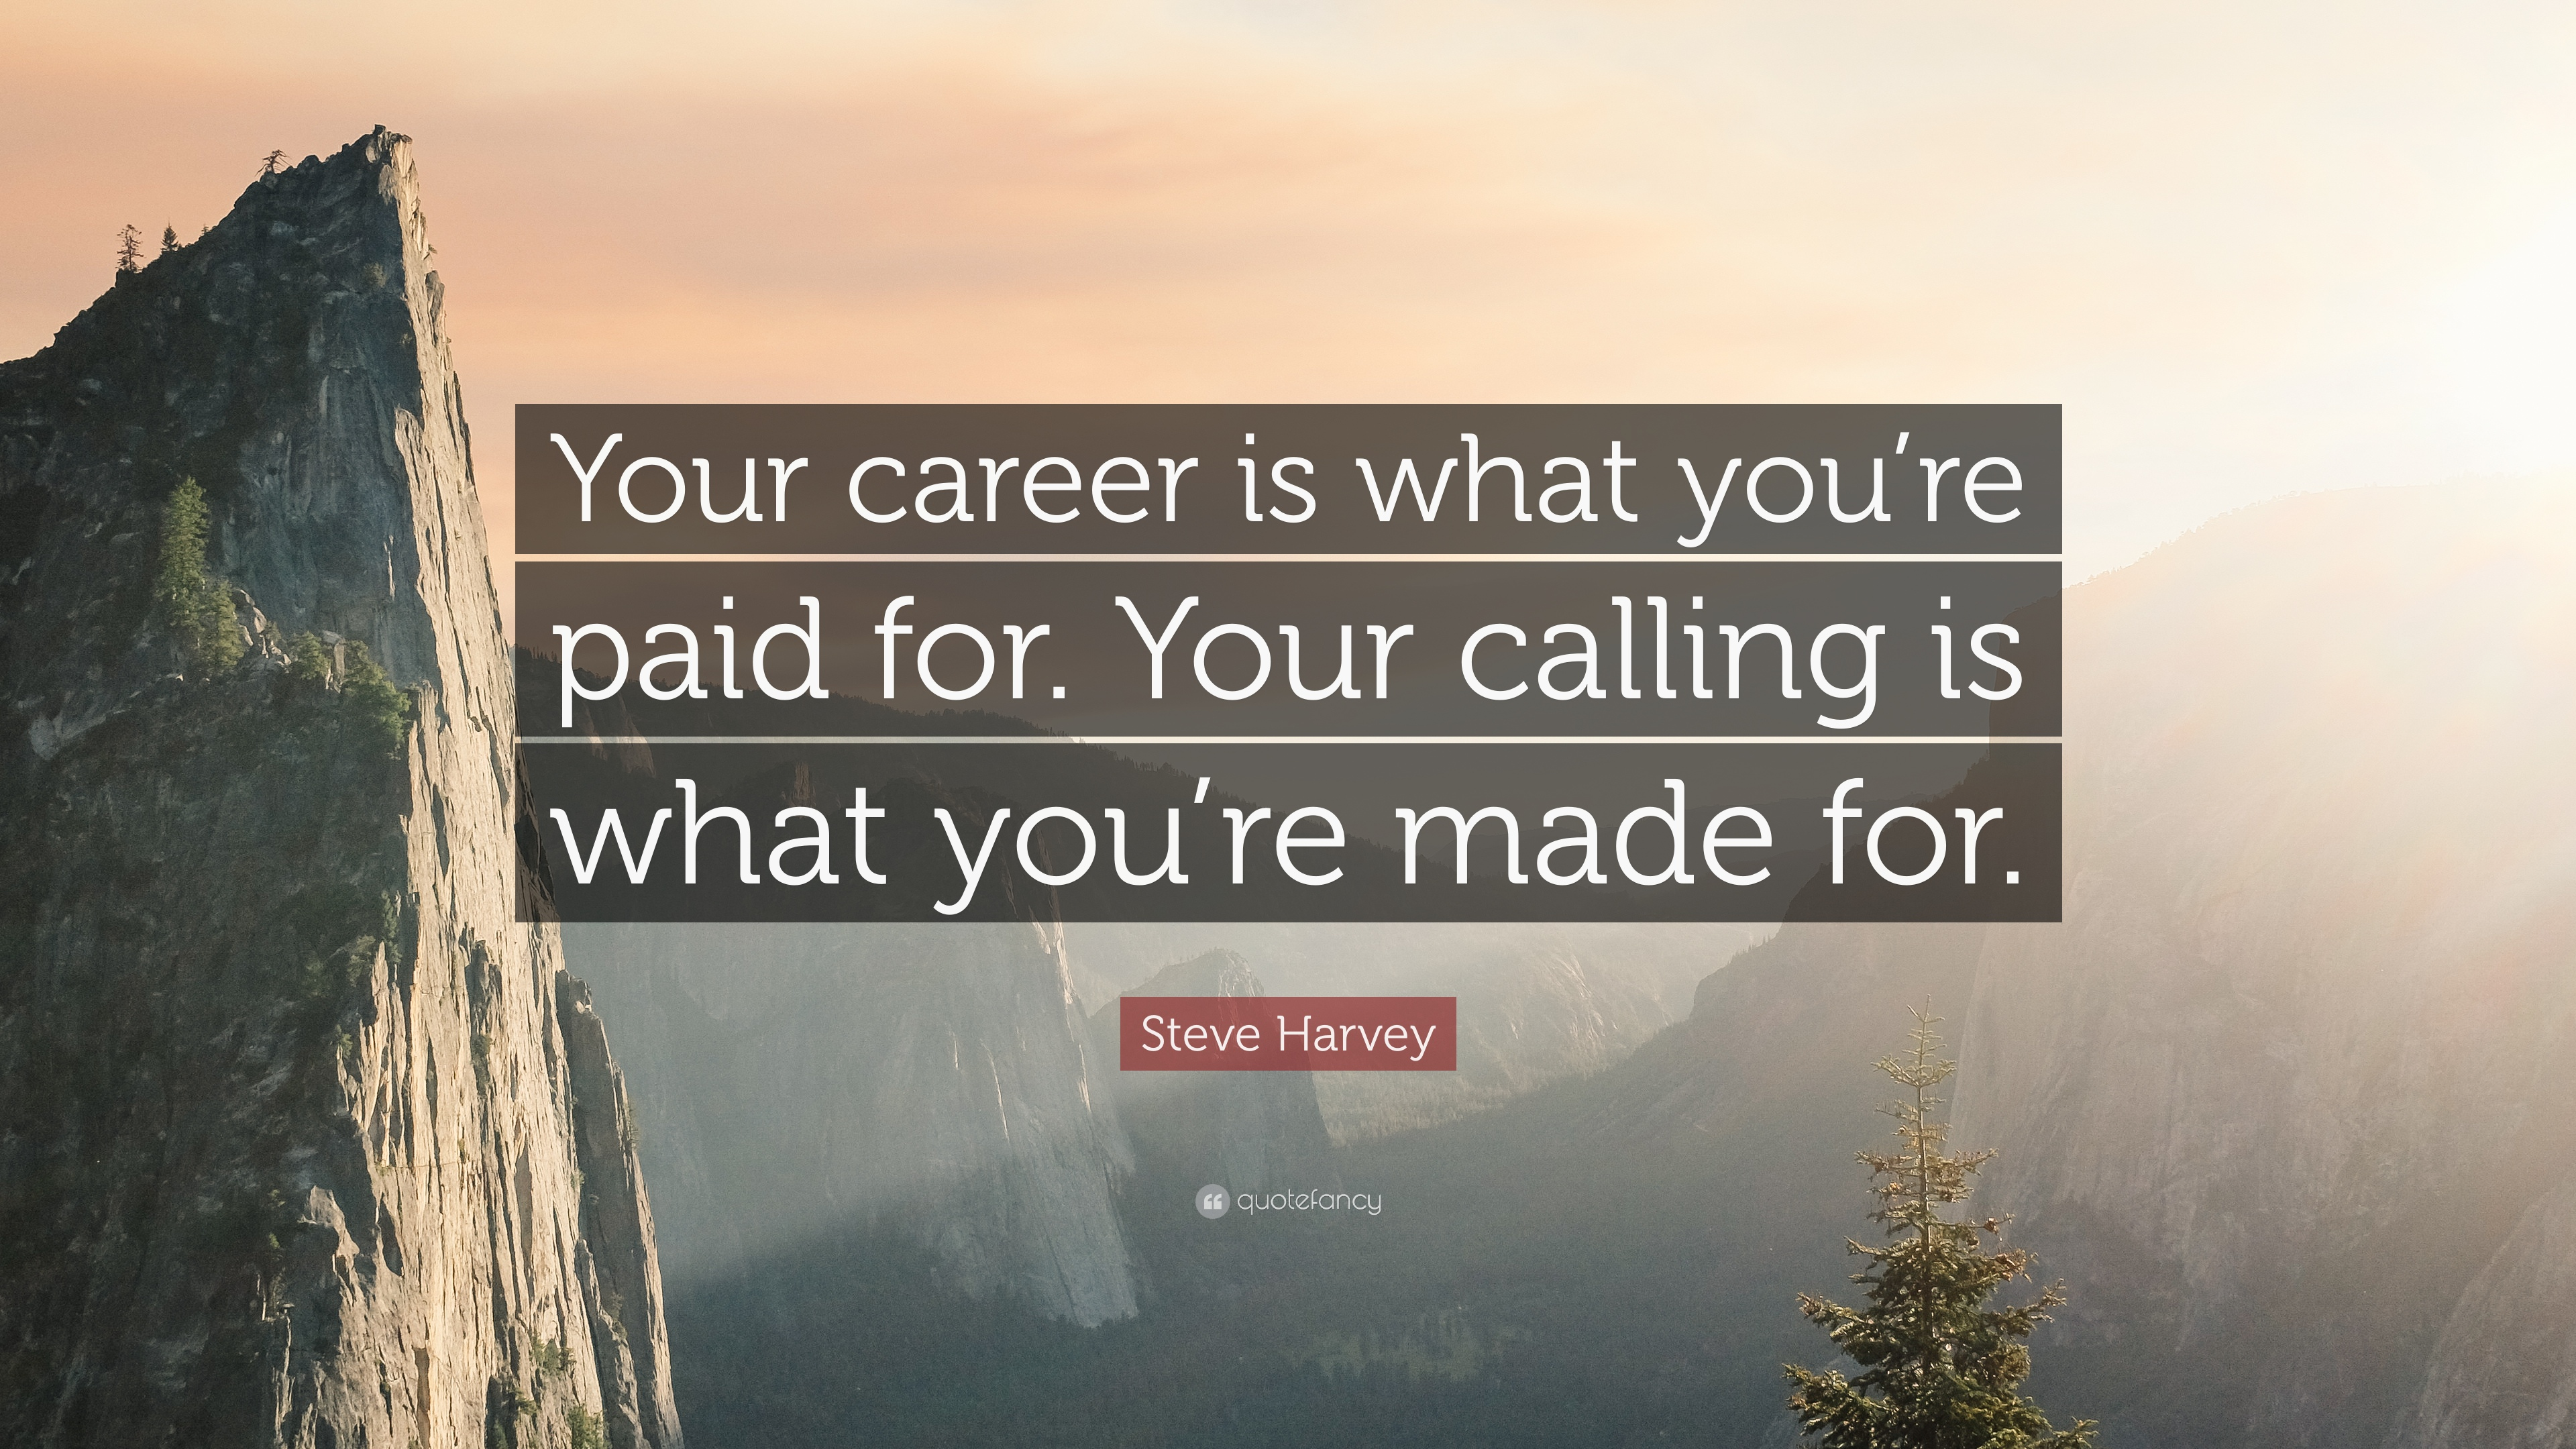 Steve Harvey Quote Your Career Is What You Re Paid For Your Calling Is What You Re Made For